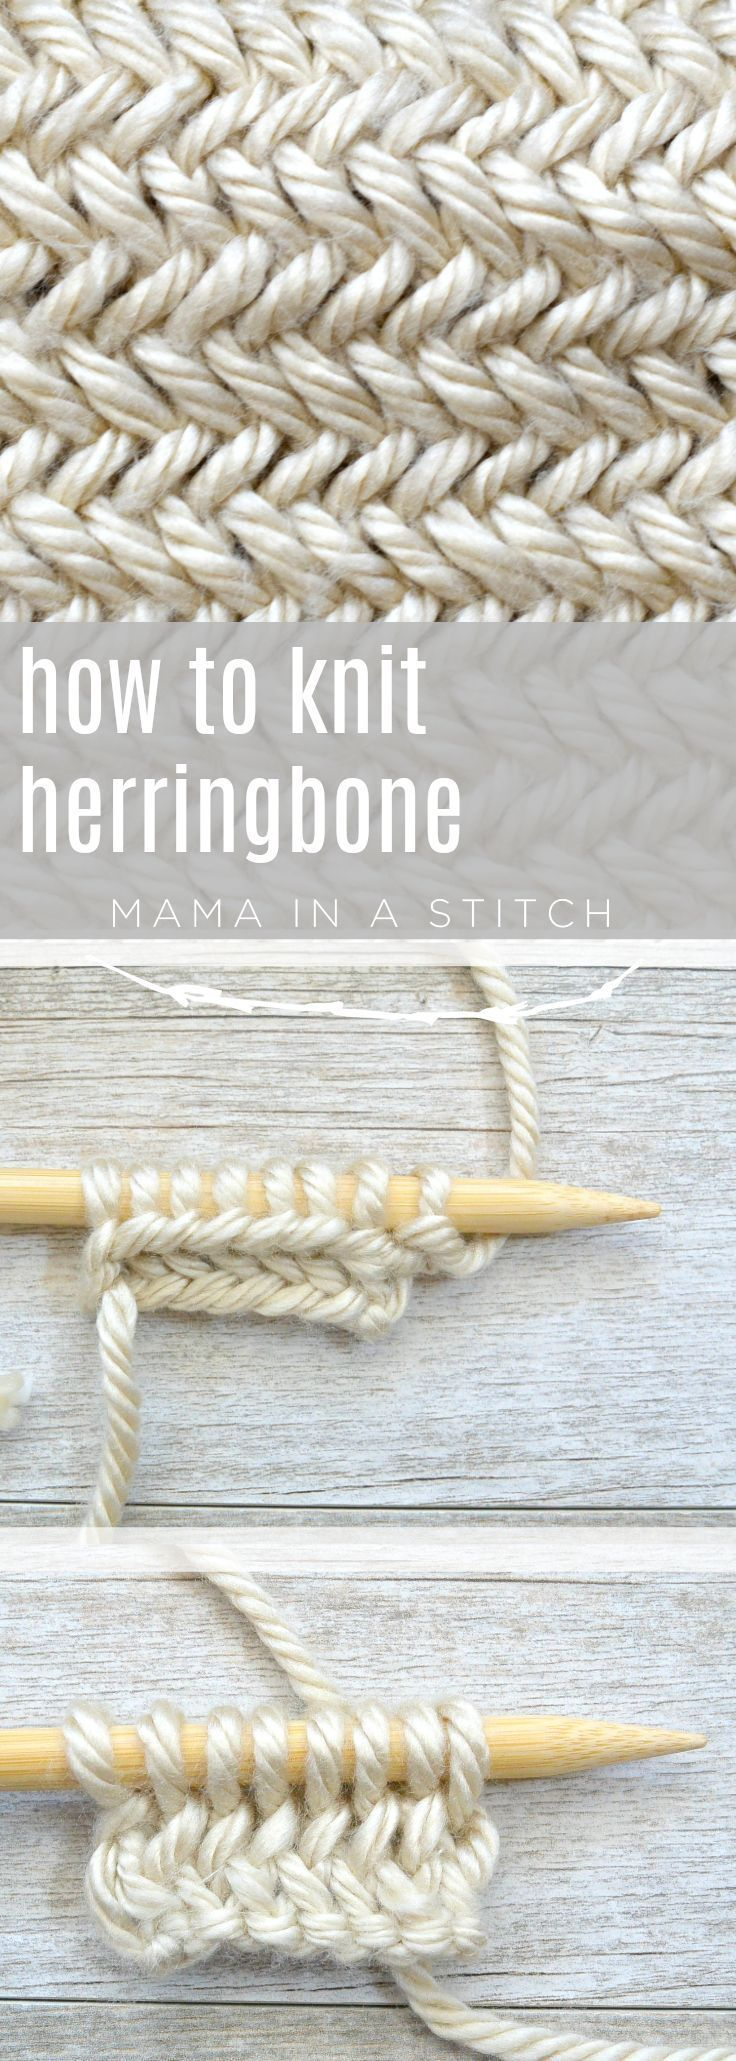 How To Knit the Horizontal Herringbone Stitch